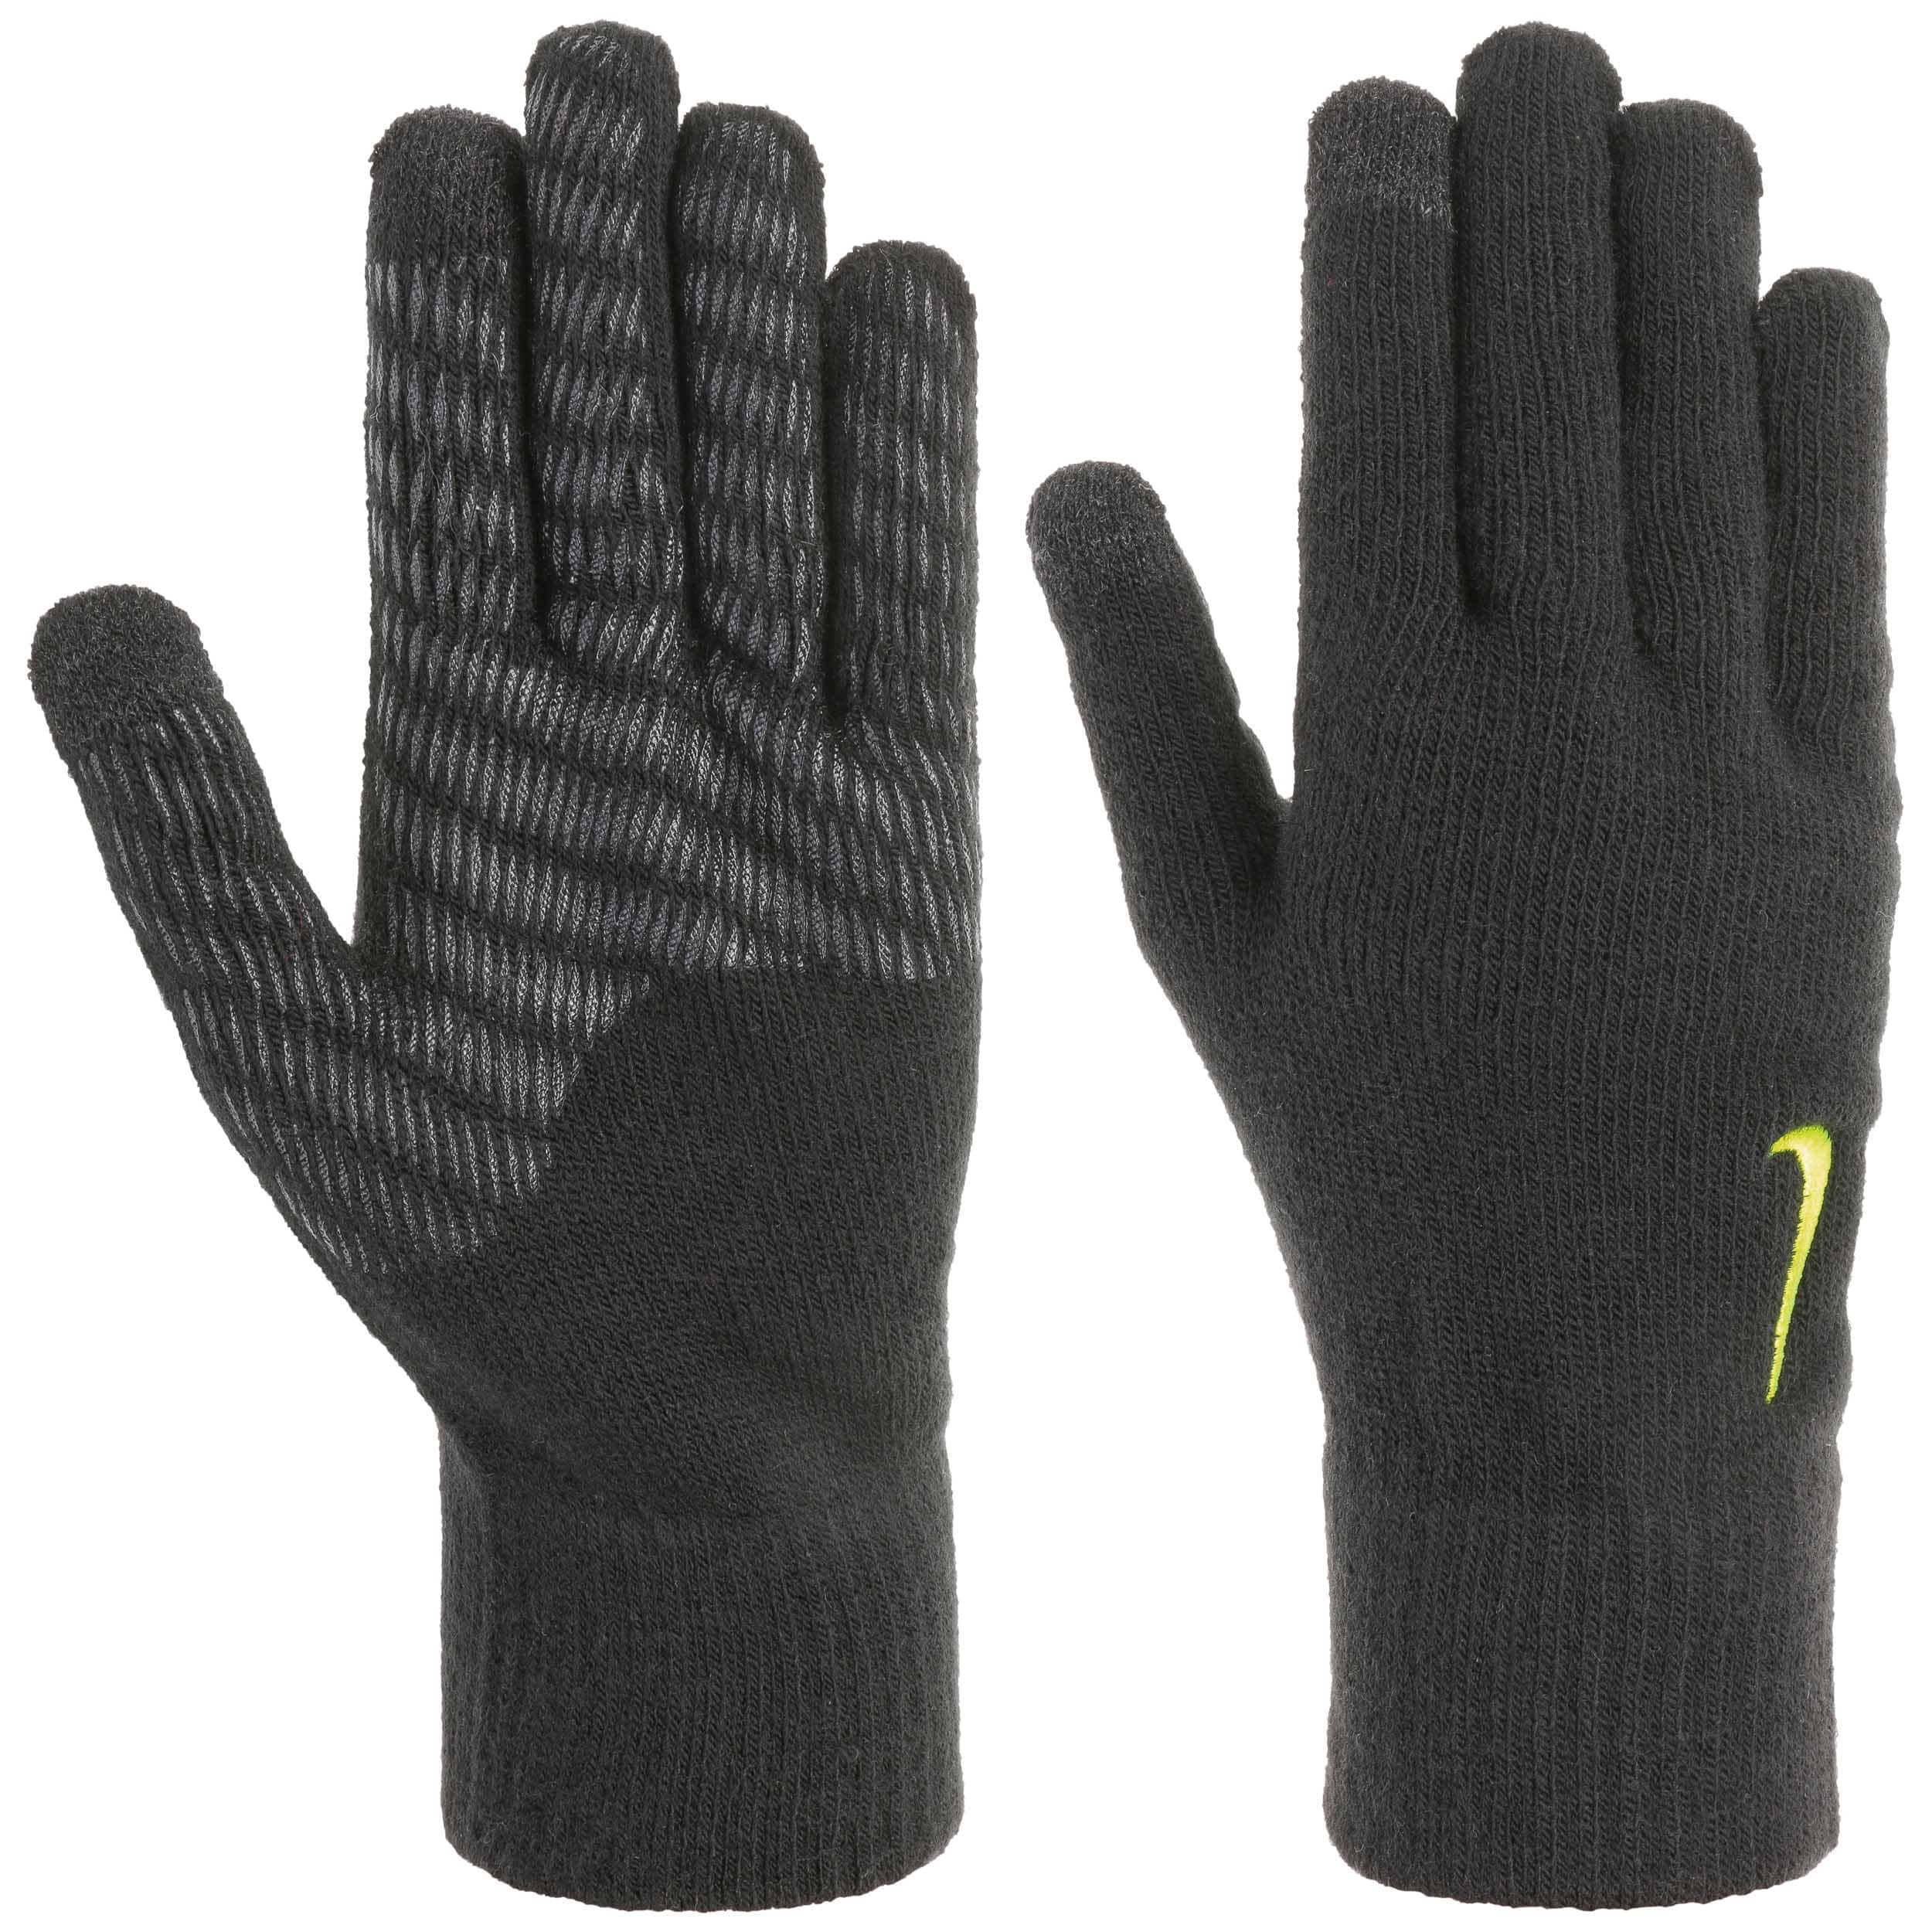 Nike Gloves Touch Screen: Knit Tech Touchscreen Gloves By Nike, EUR 19,95 --> Hats